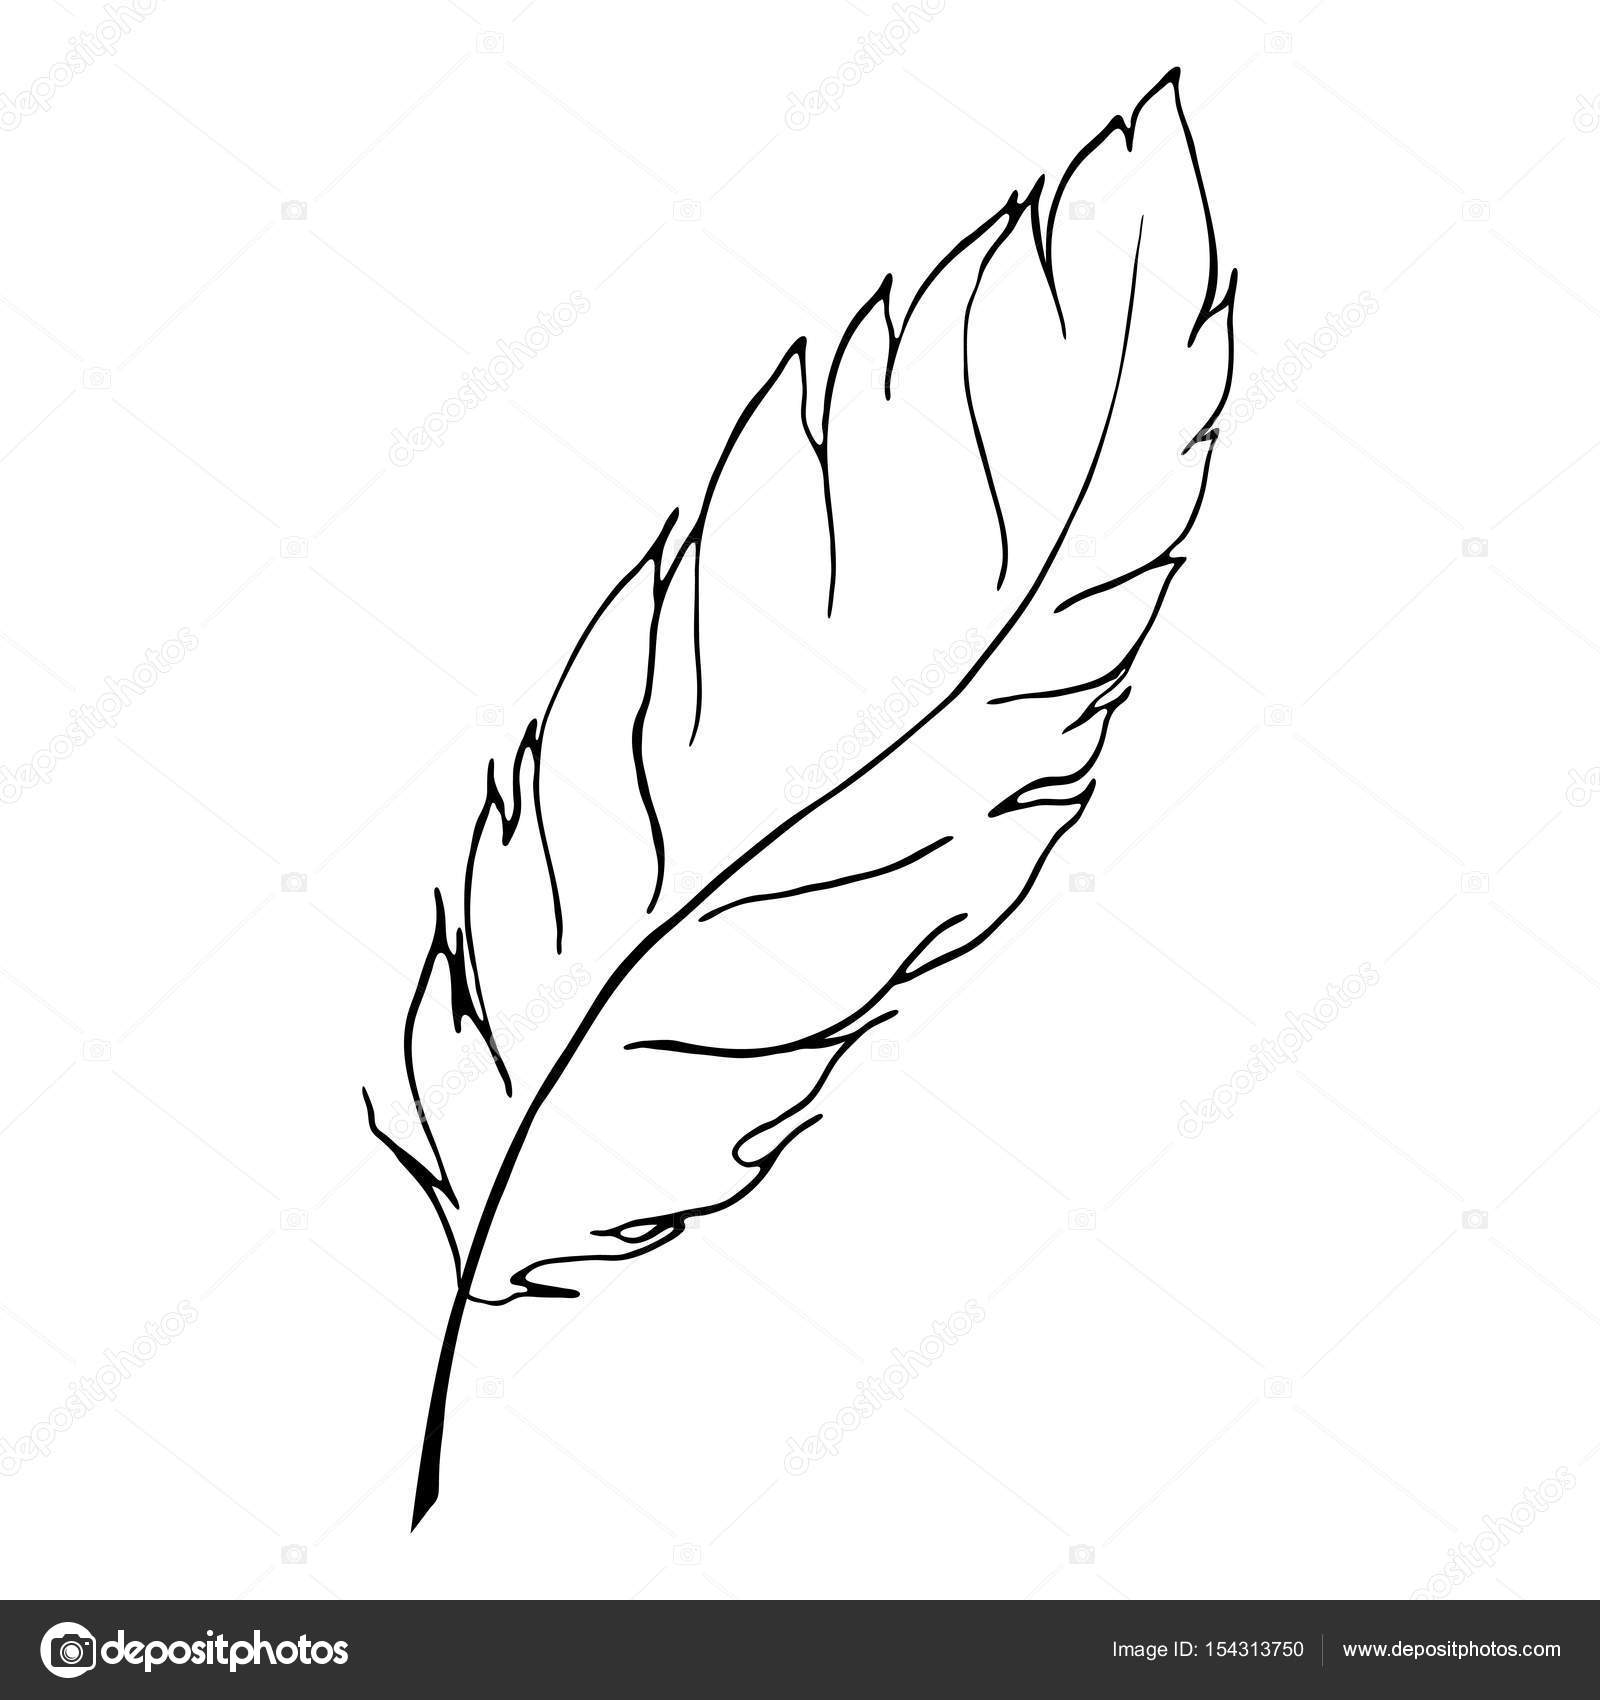 Monochrome Black And White Bird Feather Line Art Vector Stock